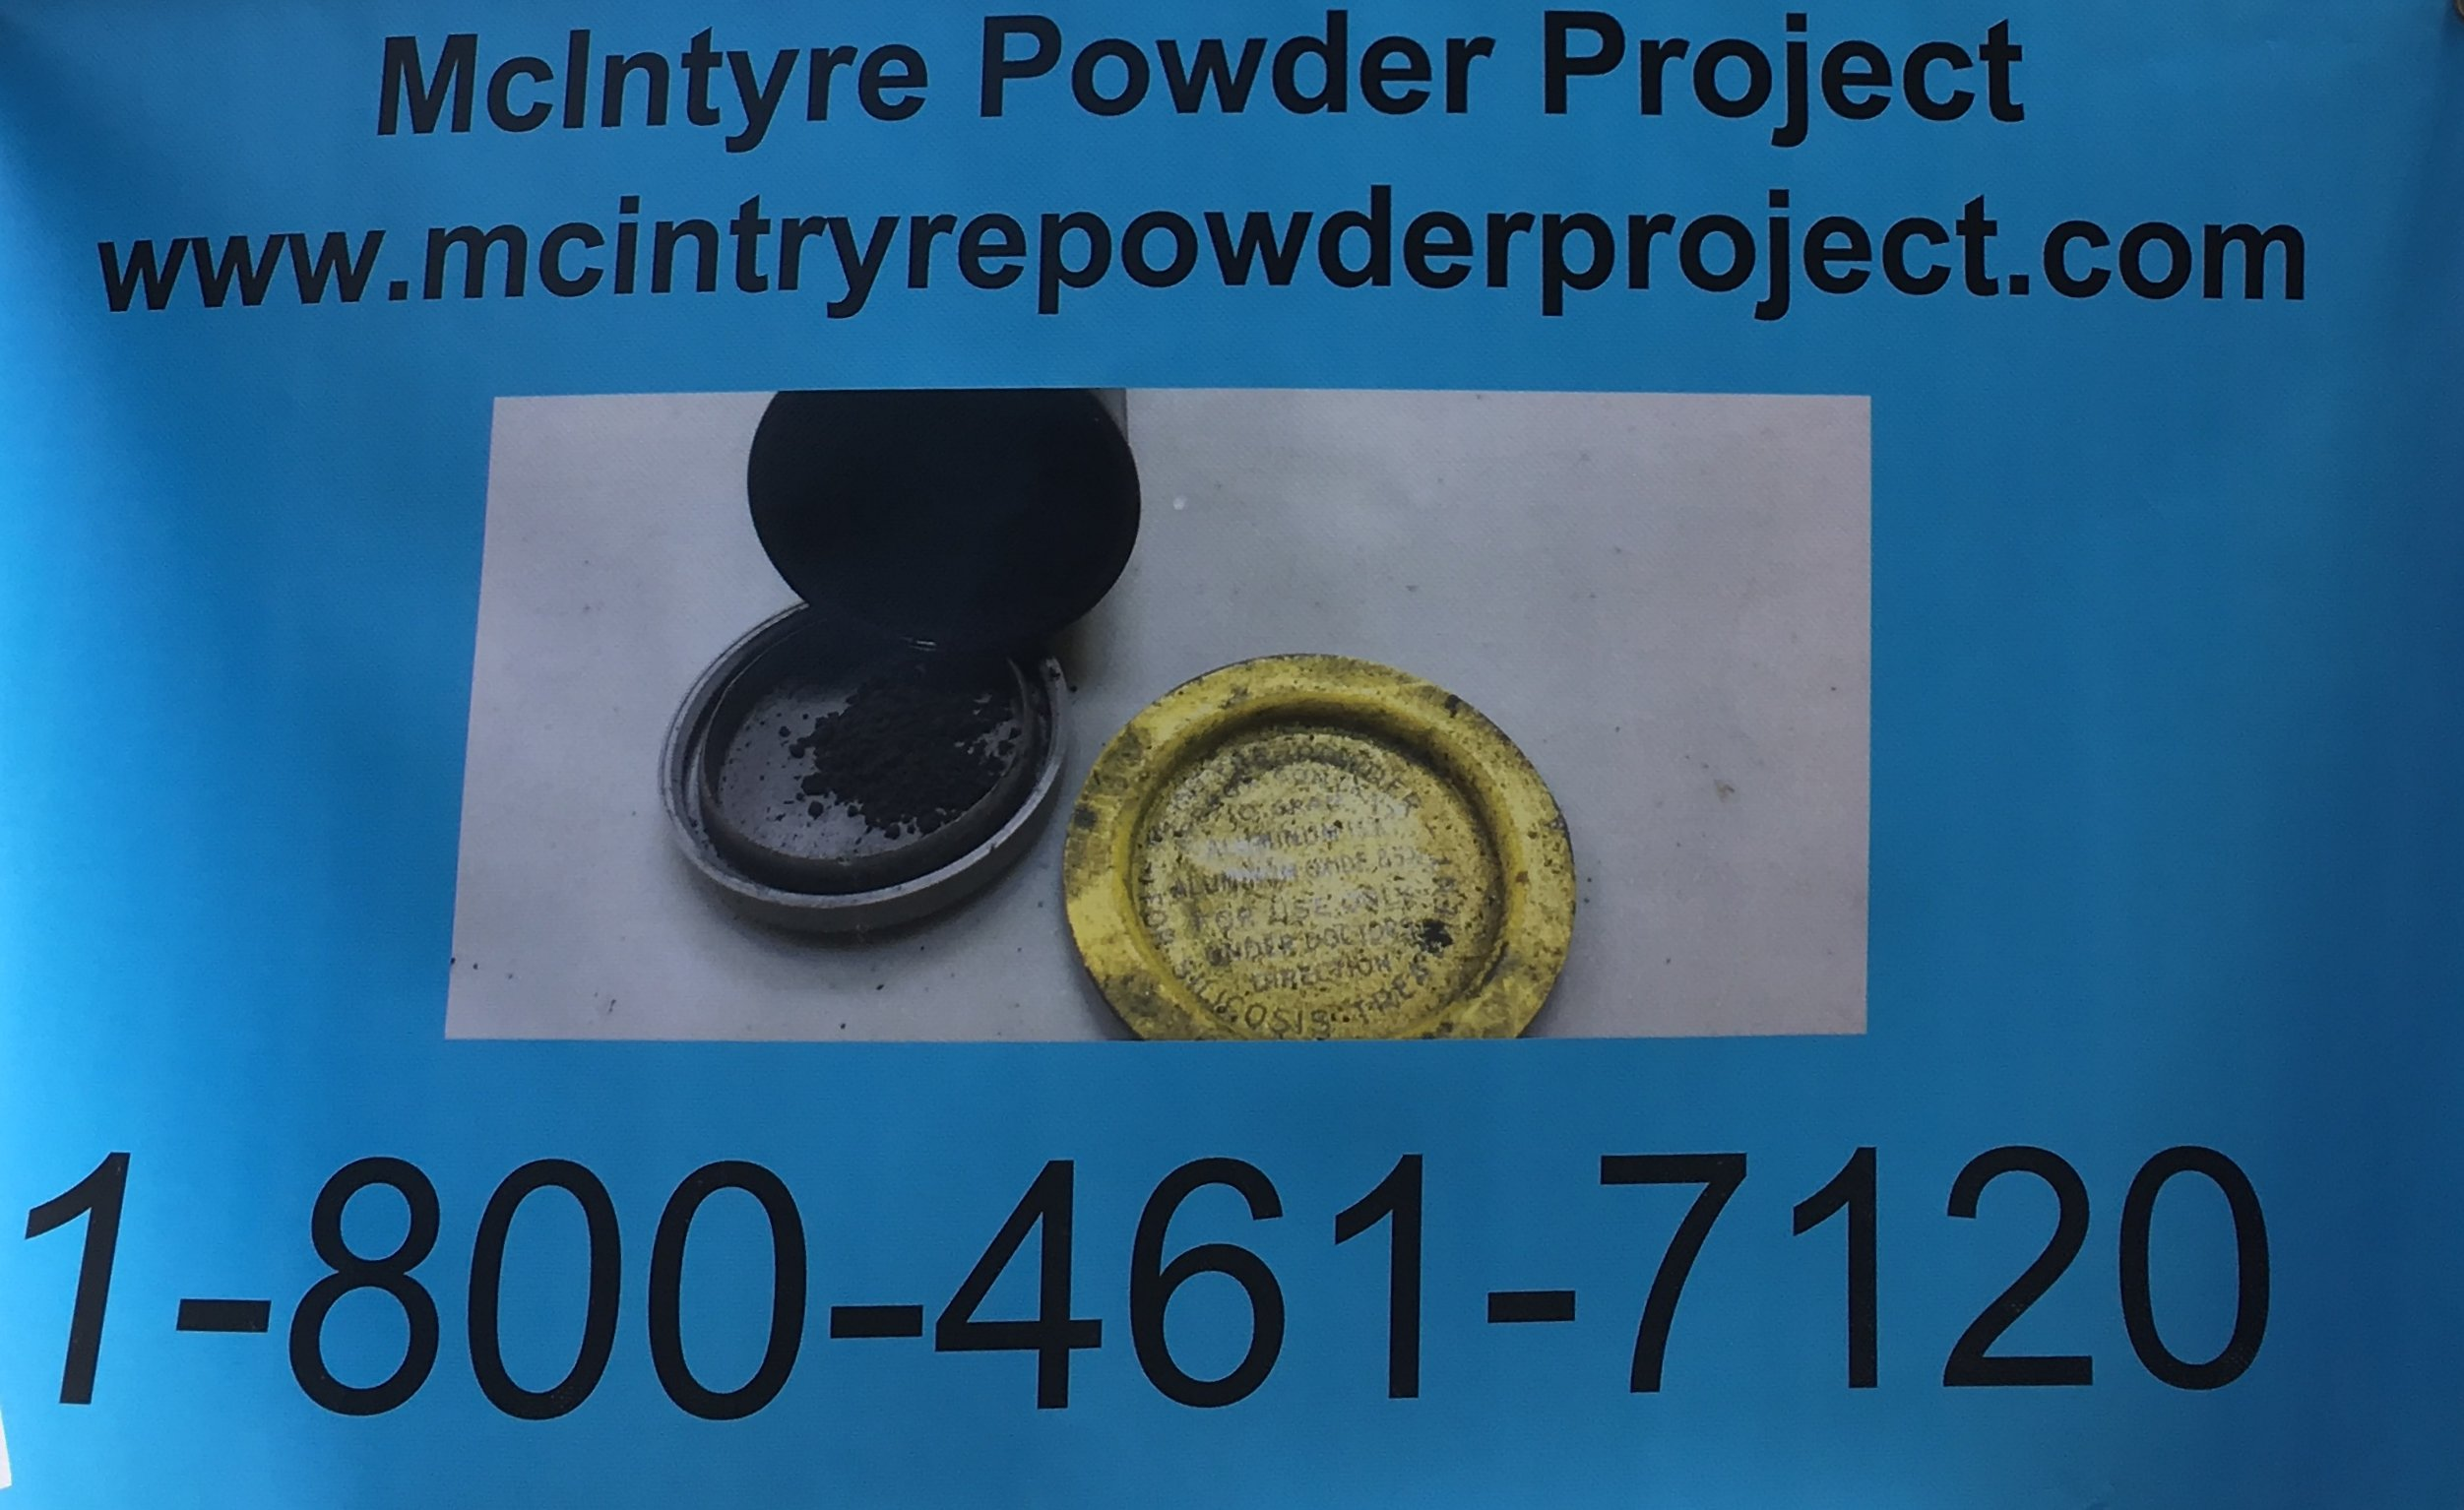 contact McIntyre Powder Project